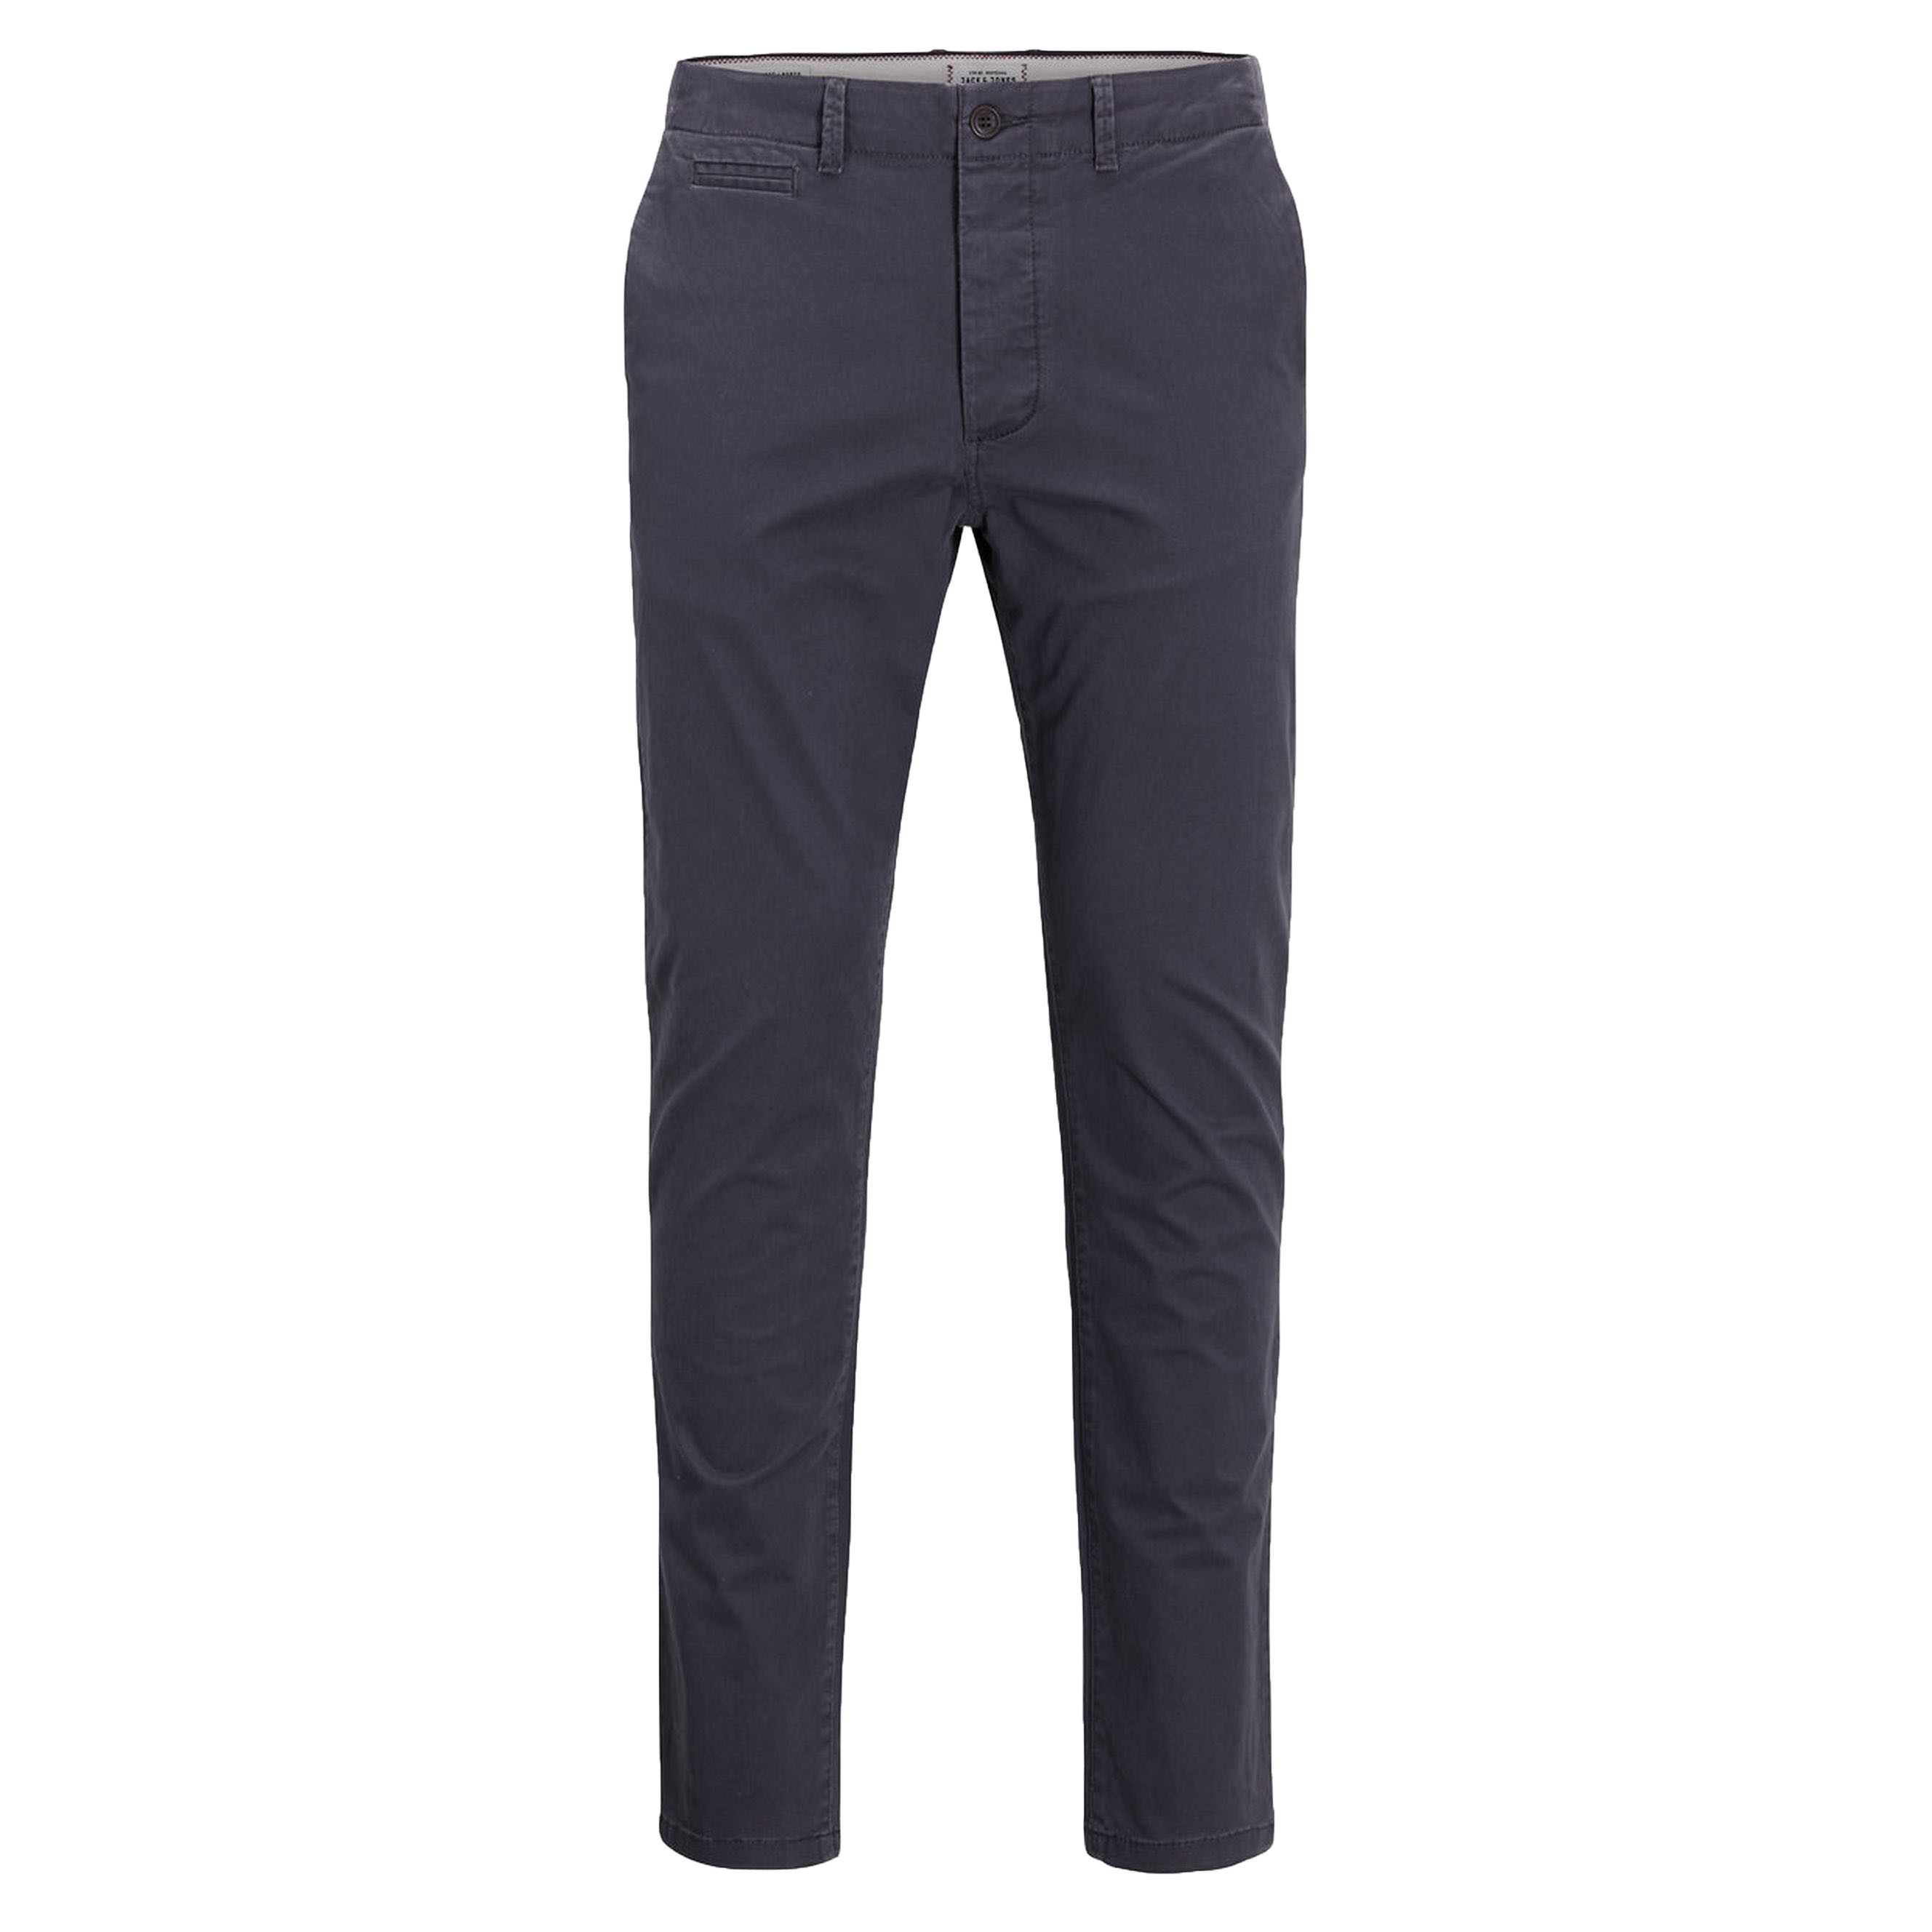 online retailer 2018 shoes classic styles Jack & Jones Marco Enzo Casual Cotton Chinos Dark Grey